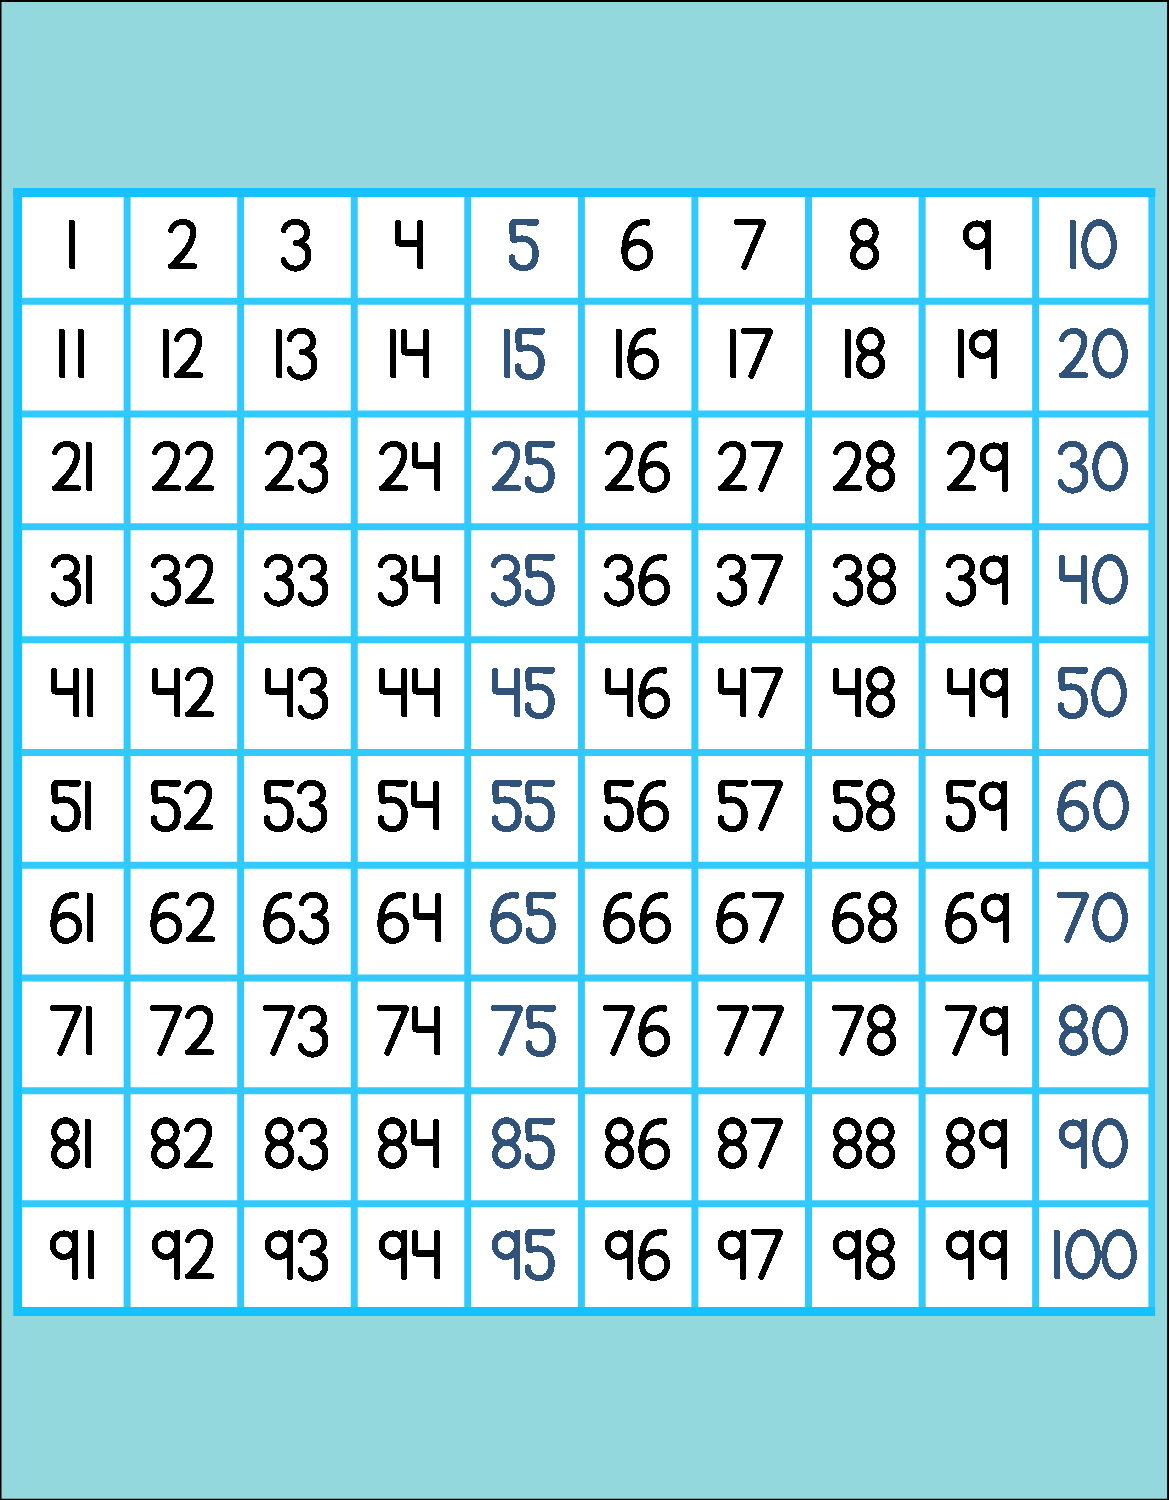 Free Printable Hundreds 100 Chart, Great For Bulletin Boards, Math - Free Printable Hundreds Chart